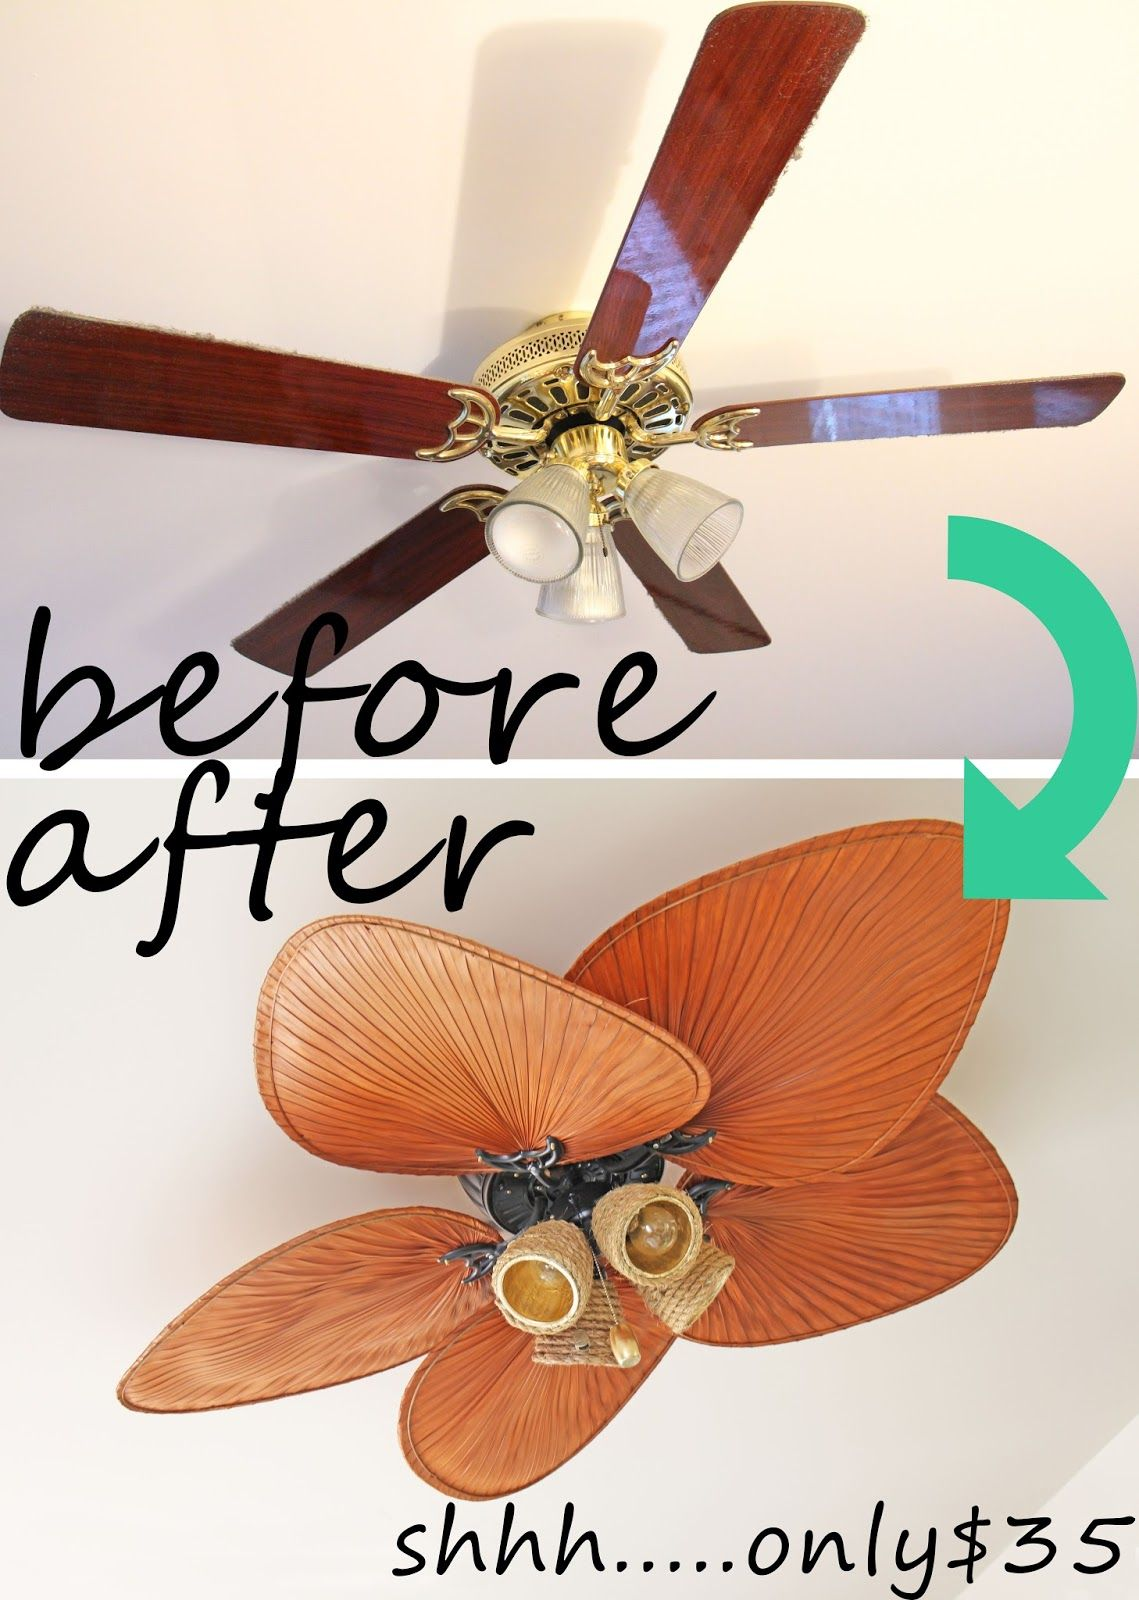 Crazy amazing ugly ceiling fan 35 makeover diy - Ventiladores silenciosos hogar ...